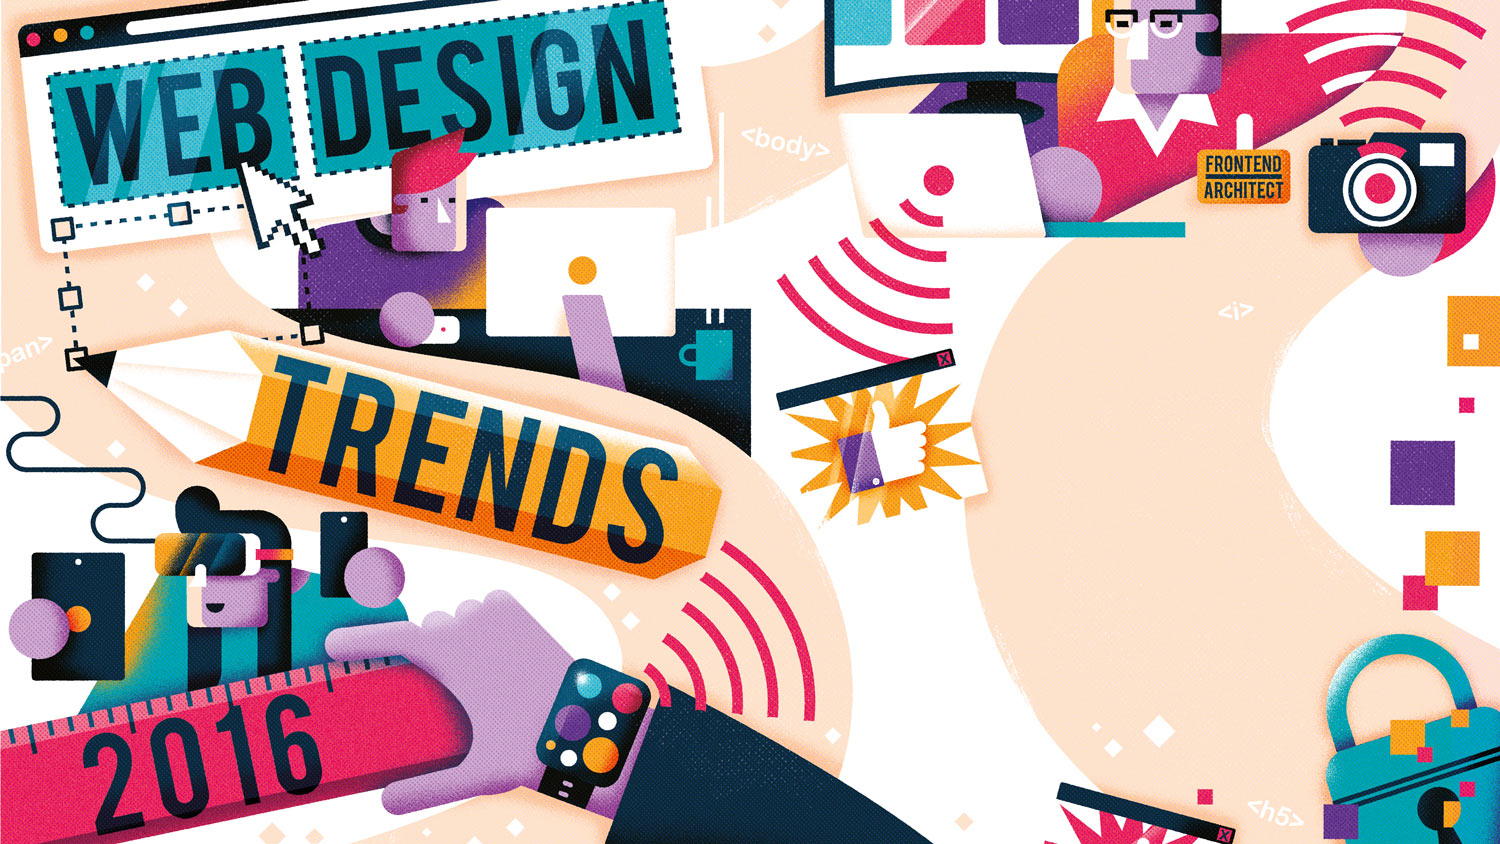 Web trends for 2016